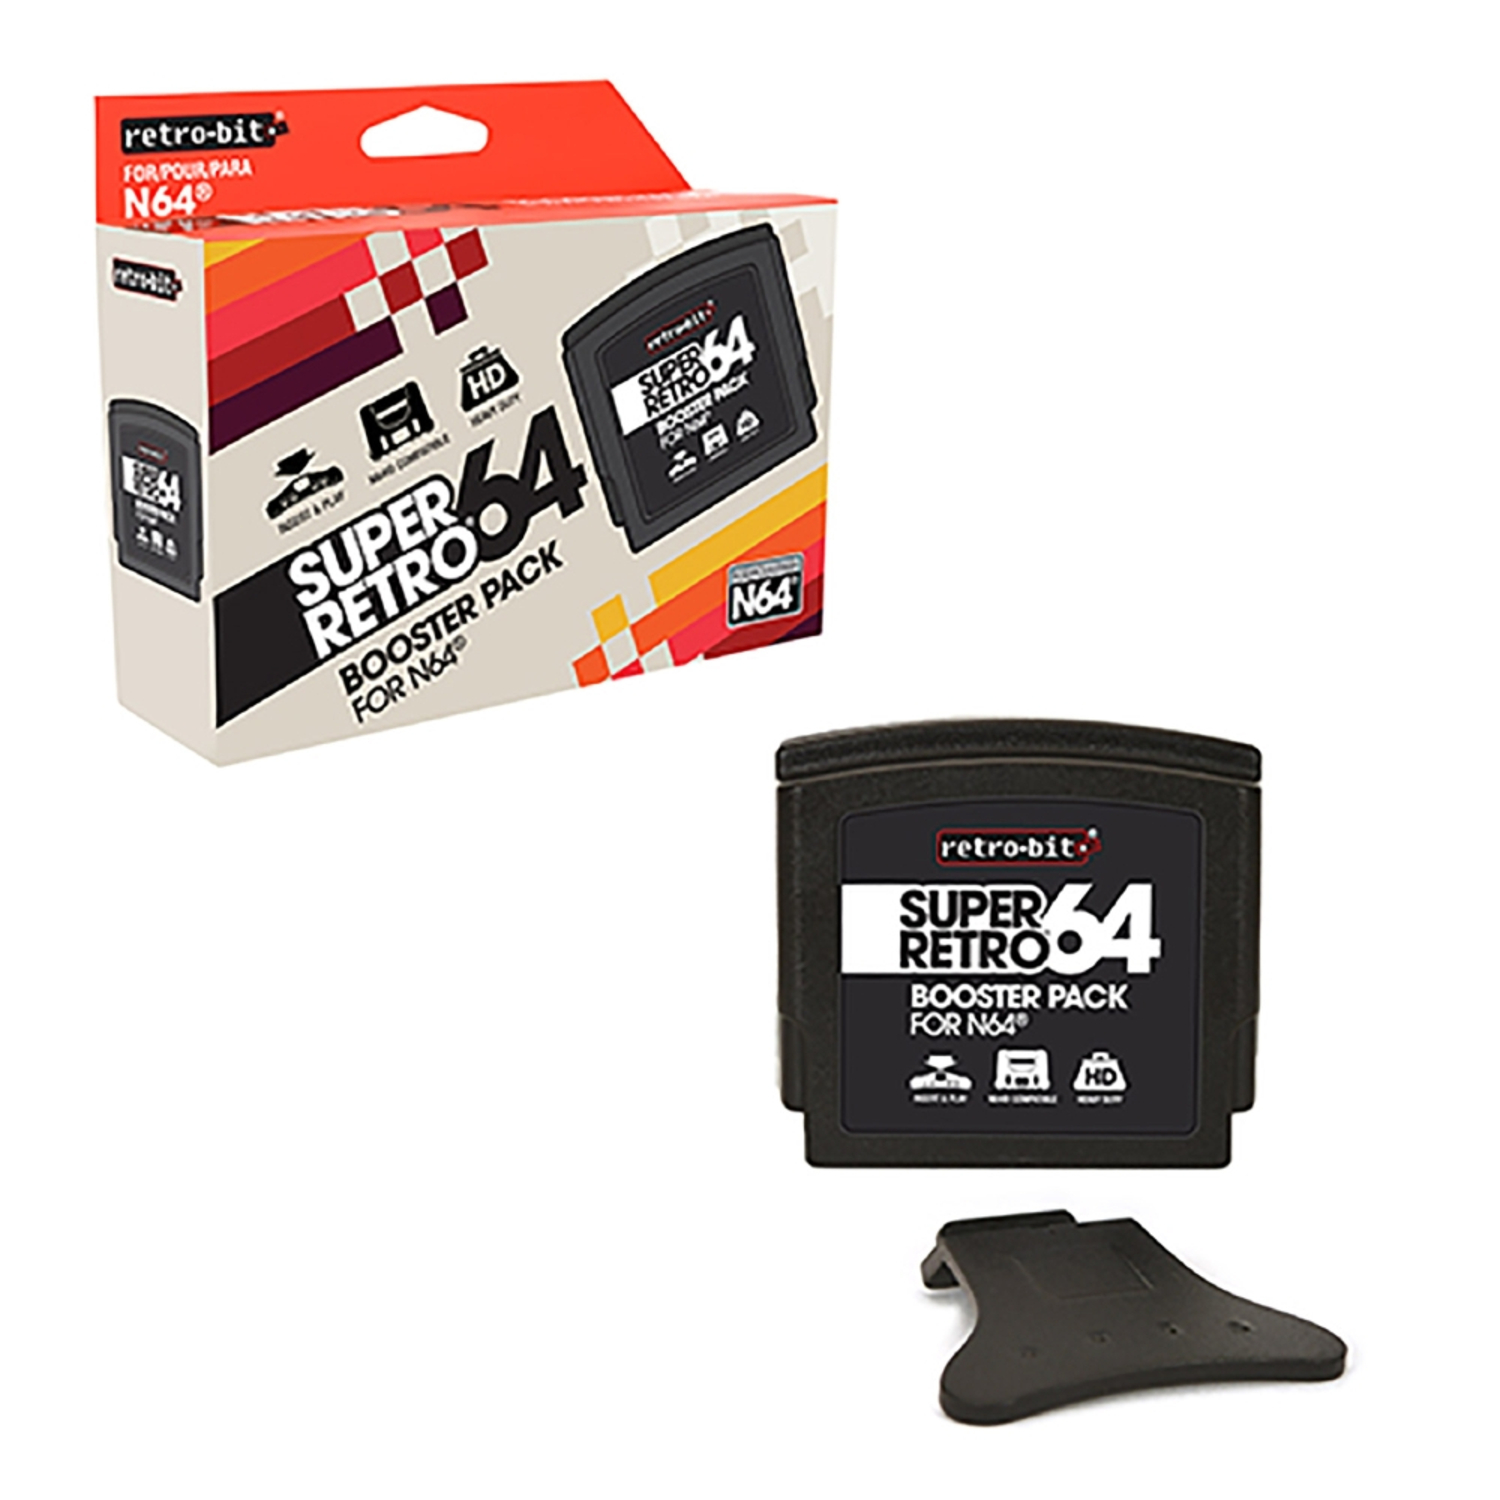 Retro-Bit rb-n64-0247 N64 Booster Pack